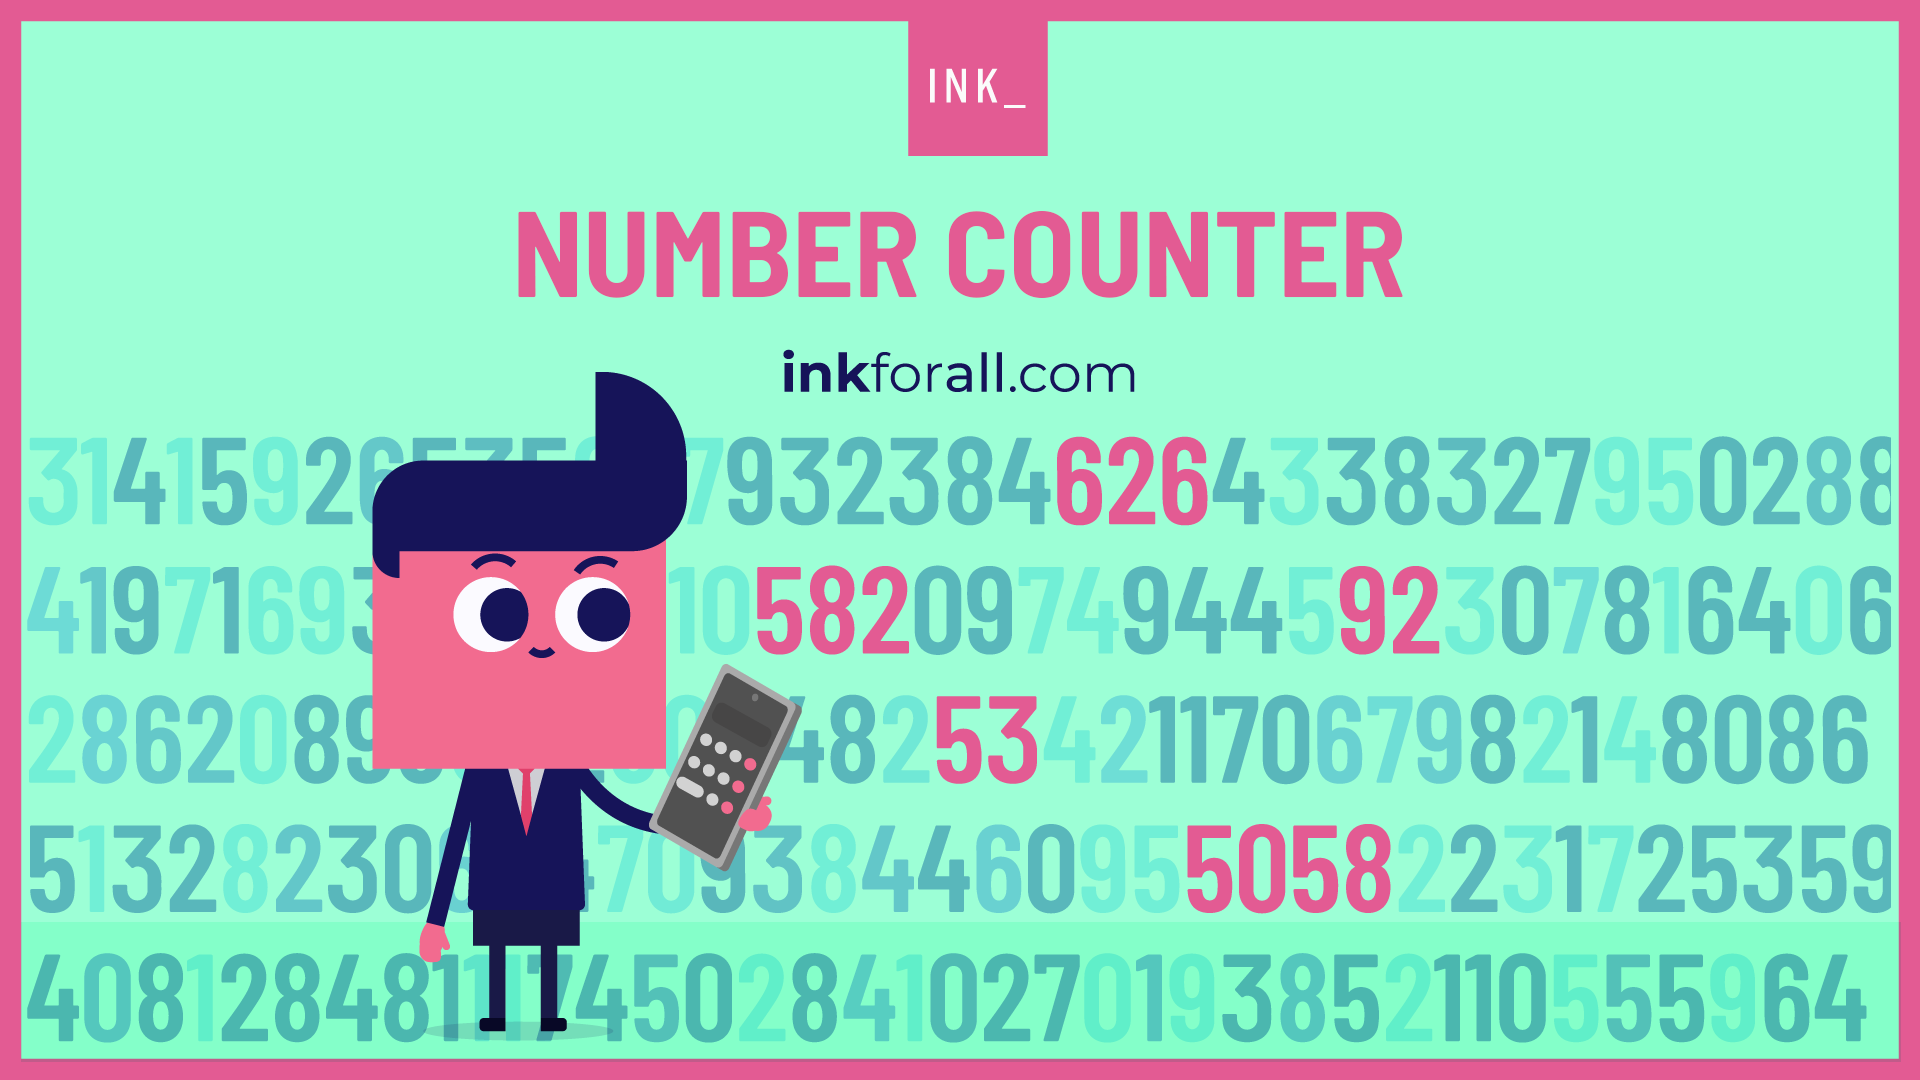 Number counter